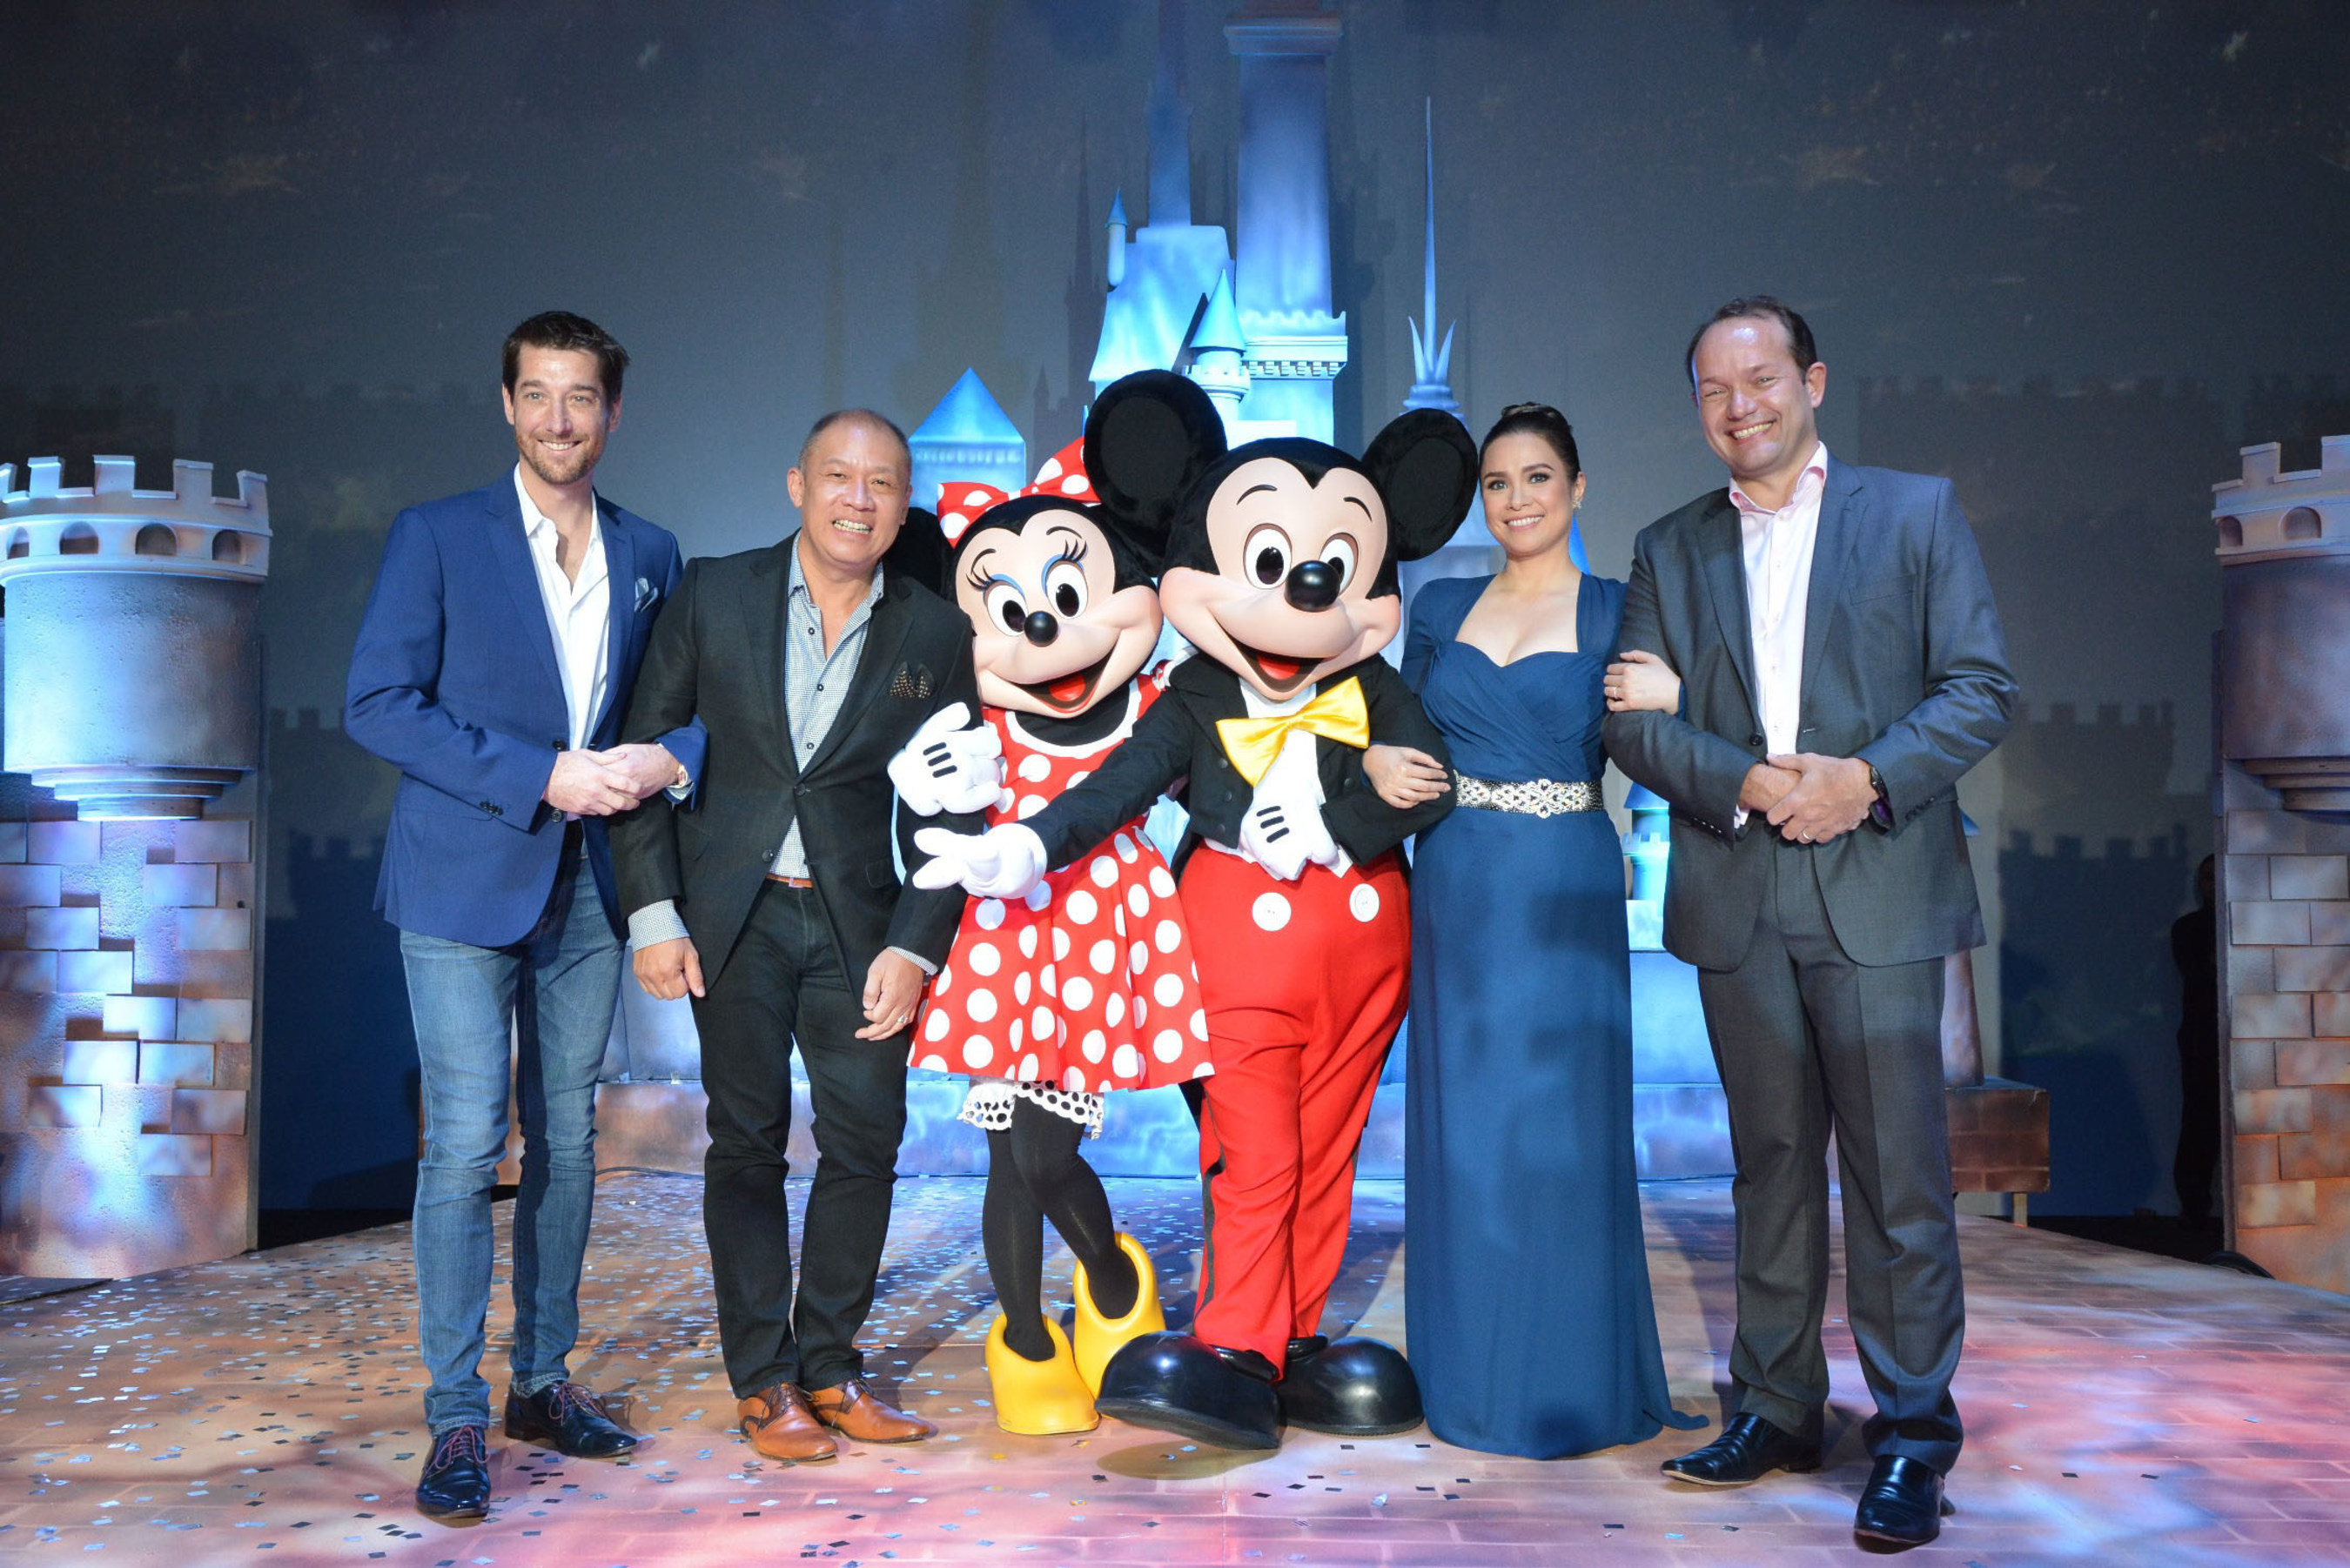 The no. 1 mobile brand in the country Globe Telecom is now officially the proud partner of Disney Family Entertainment with brands including Pixar, Star Wars, Marvel and global leader in short-form video, Maker Studios. Celebrating the partnership are (L-R) Globe Senior Advisor for Consumer Business Dan Horan, Globe President and CEO Ernest Cu, Disney's Minnie Mouse and Mickey Mouse, special guest and Disney legend Lea Salonga, and Managing Director, The Walt Disney Company Southeast Asia, Rob Gilby.